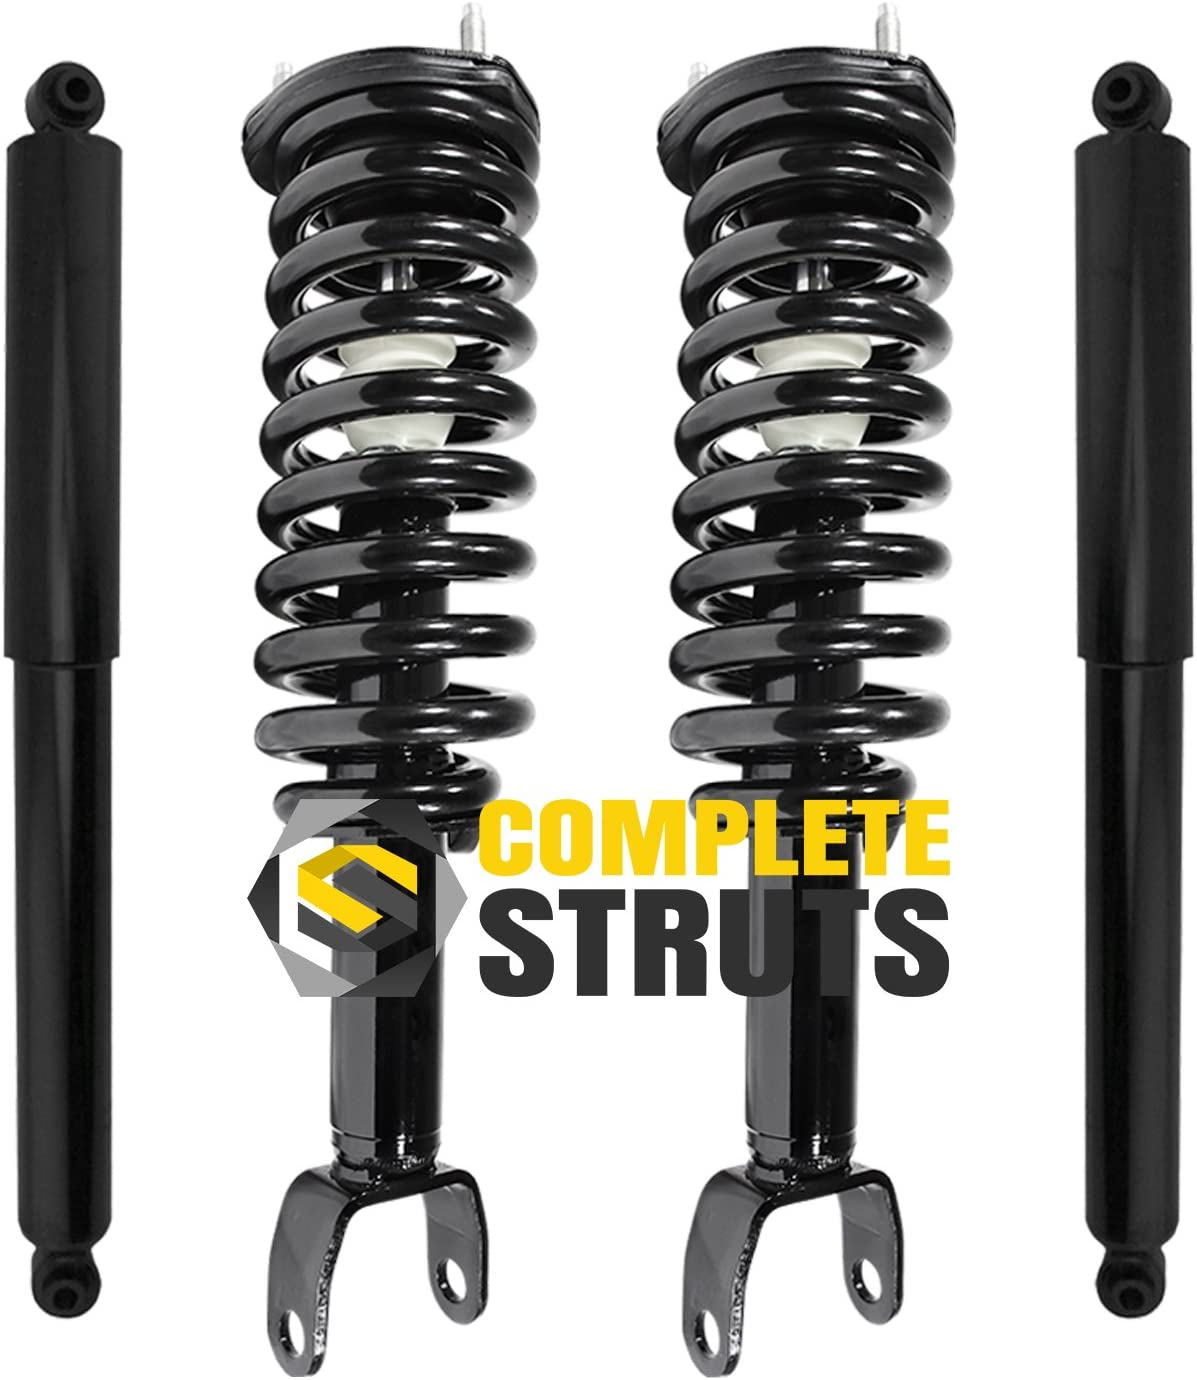 Front New color Quick Complete Popular products Struts Assembly Absorbers Shocks Rep Rear